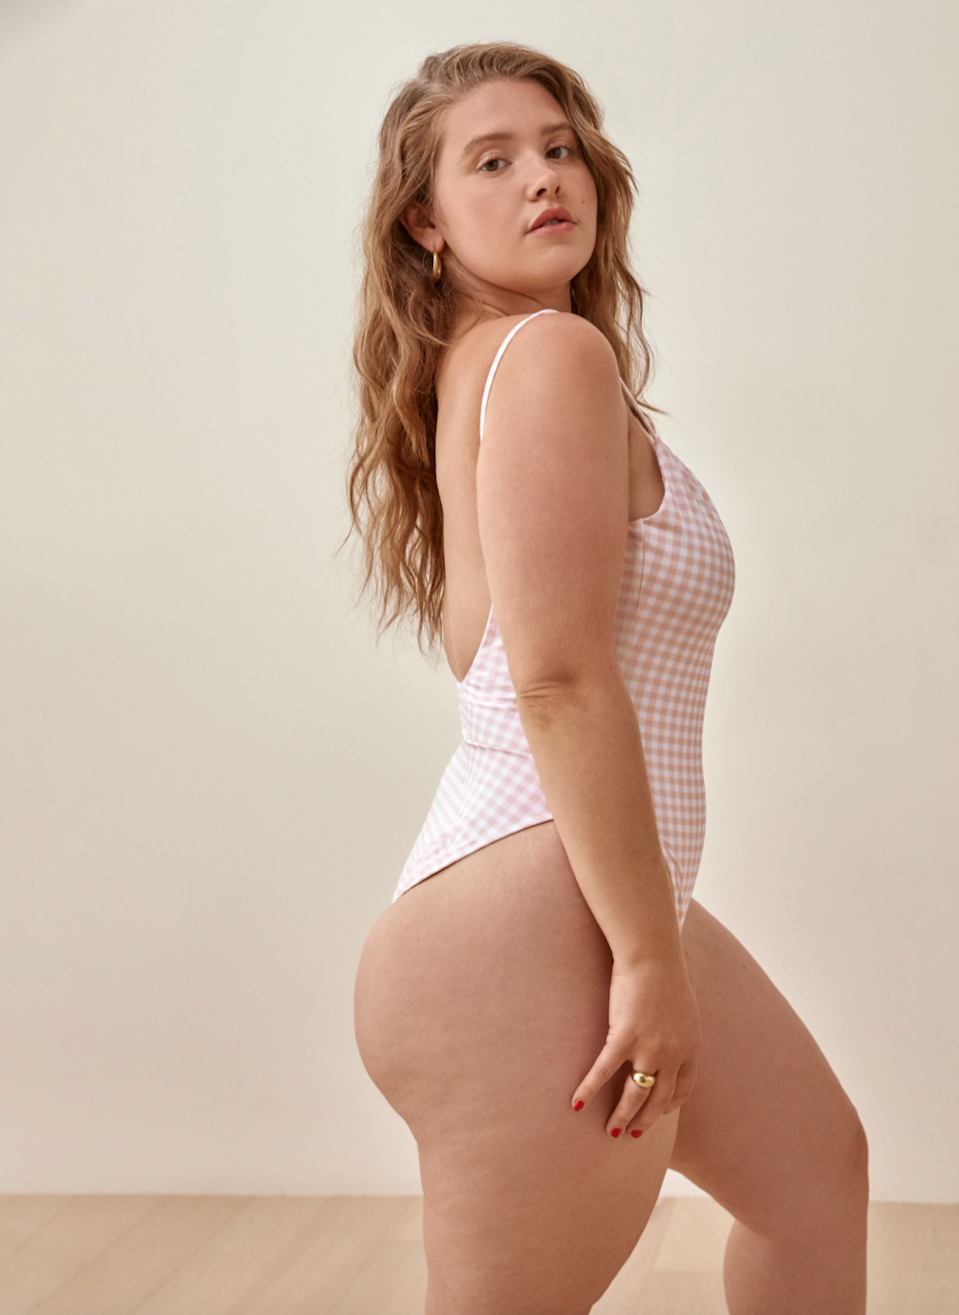 """<br><br><strong>Reformation</strong> Wave Scoop Back One Piece, $, available at <a href=""""https://go.skimresources.com/?id=30283X879131&url=https%3A%2F%2Fwww.thereformation.com%2Fproducts%2Fwave-one-piece%3Fcolor%3DBlush%2BCheck"""" rel=""""nofollow noopener"""" target=""""_blank"""" data-ylk=""""slk:Reformation"""" class=""""link rapid-noclick-resp"""">Reformation</a>"""